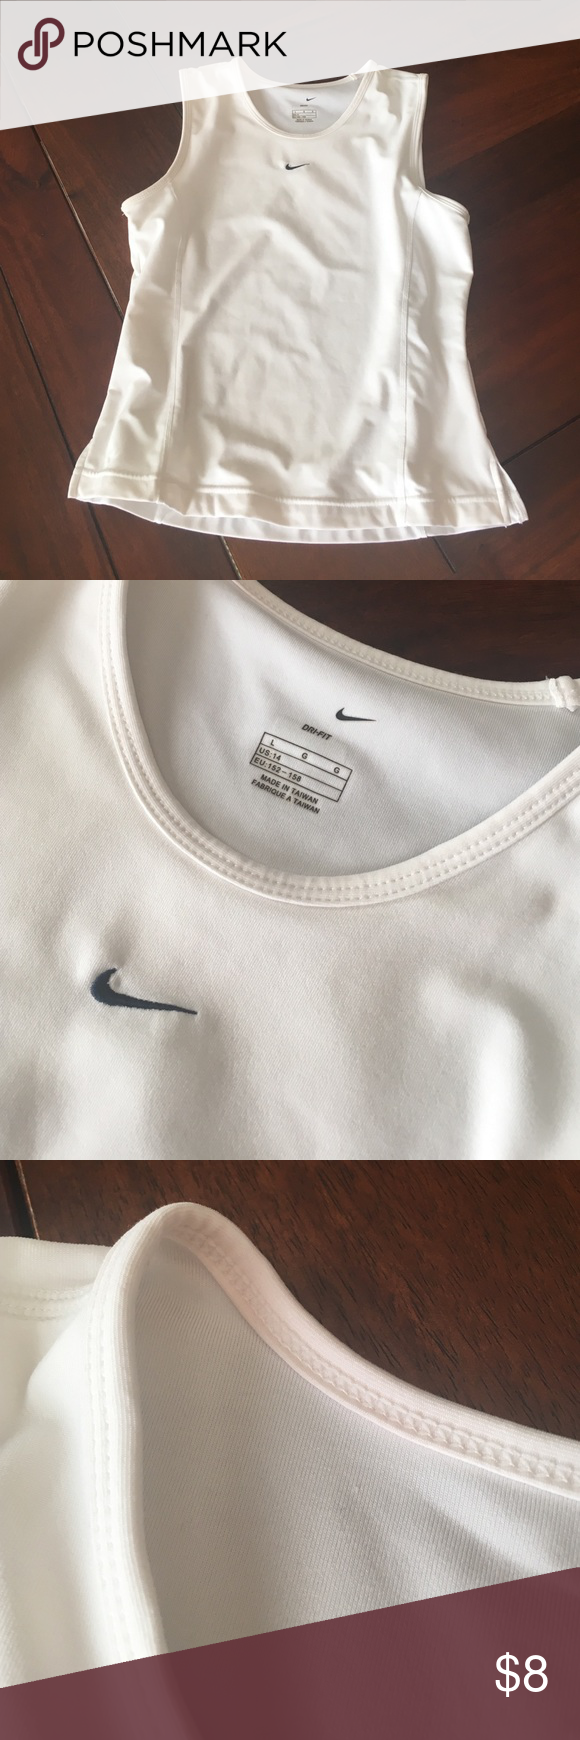 Junior's Nike Size L Workout Top White Dri-Fit Junior's Workout Top; Size L. Great condition, except when posting noticed a red tint (from red sports bra, perhaps) on upper right shoulder. Red tint on shoulder can be seen in third picture. Discounted appropriately. Nike Tops